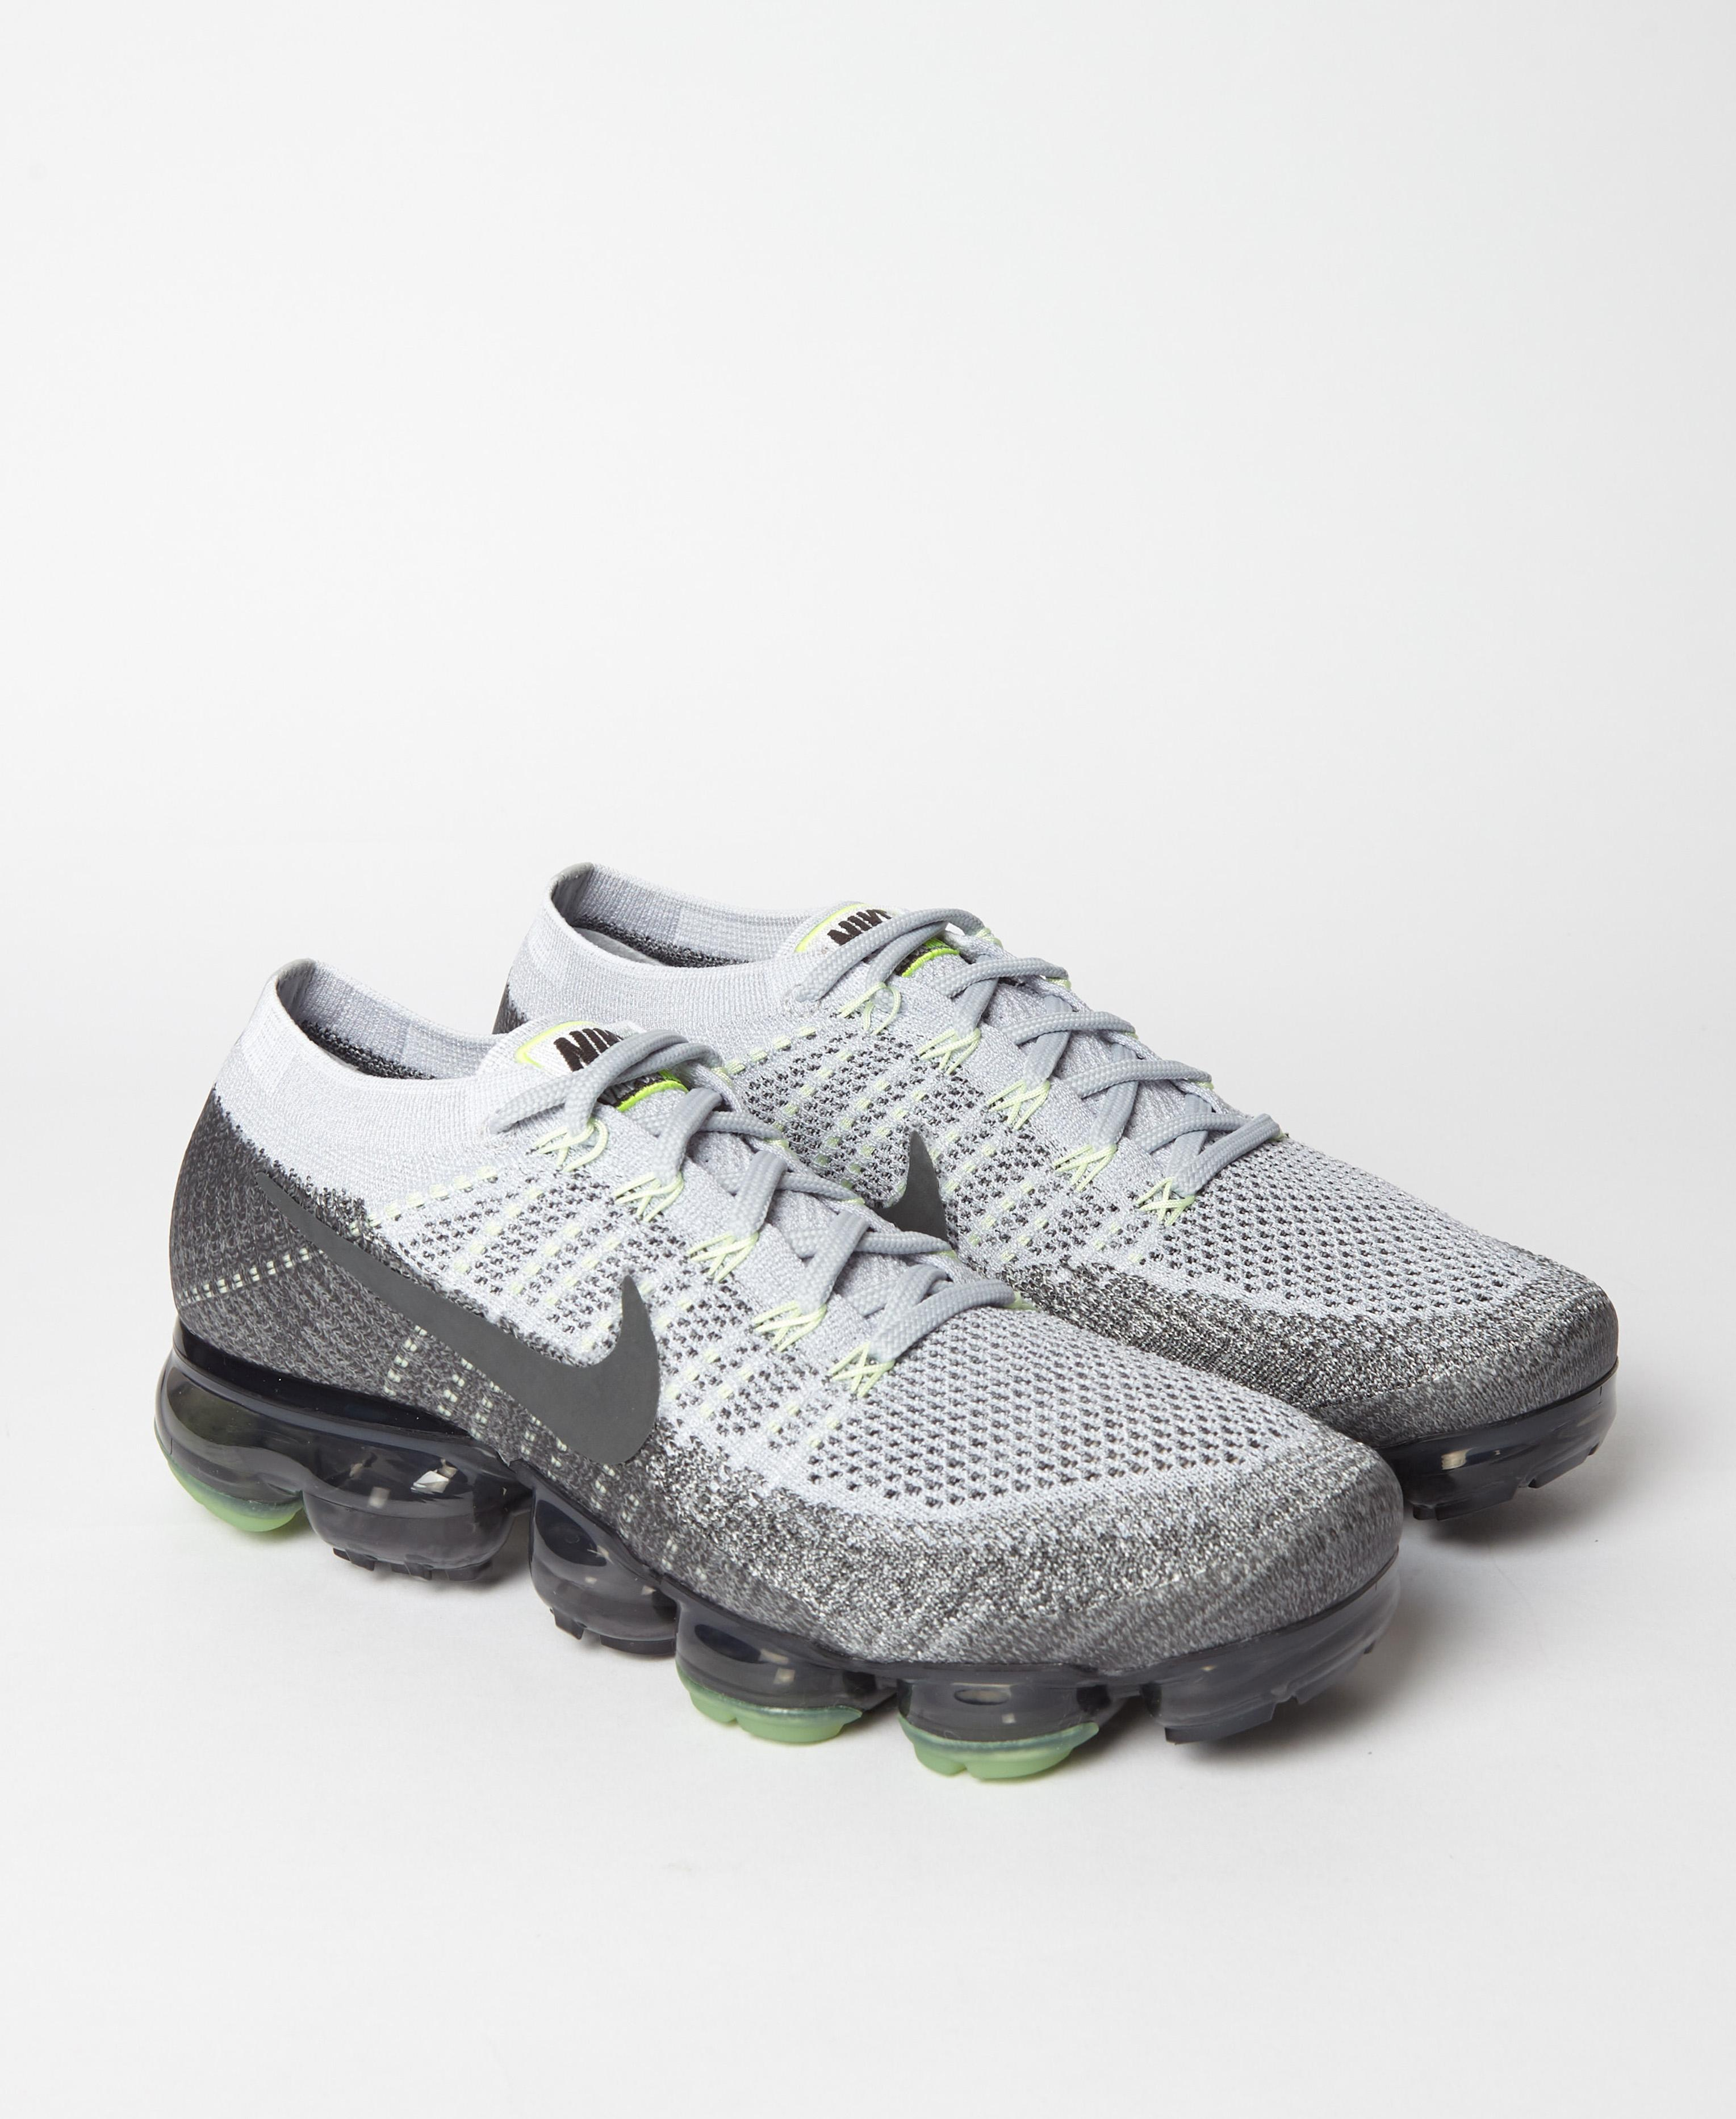 34b5e1af17 Nike Air Vapormax Flyknit Heritage Pack Neon in Gray for Men - Lyst